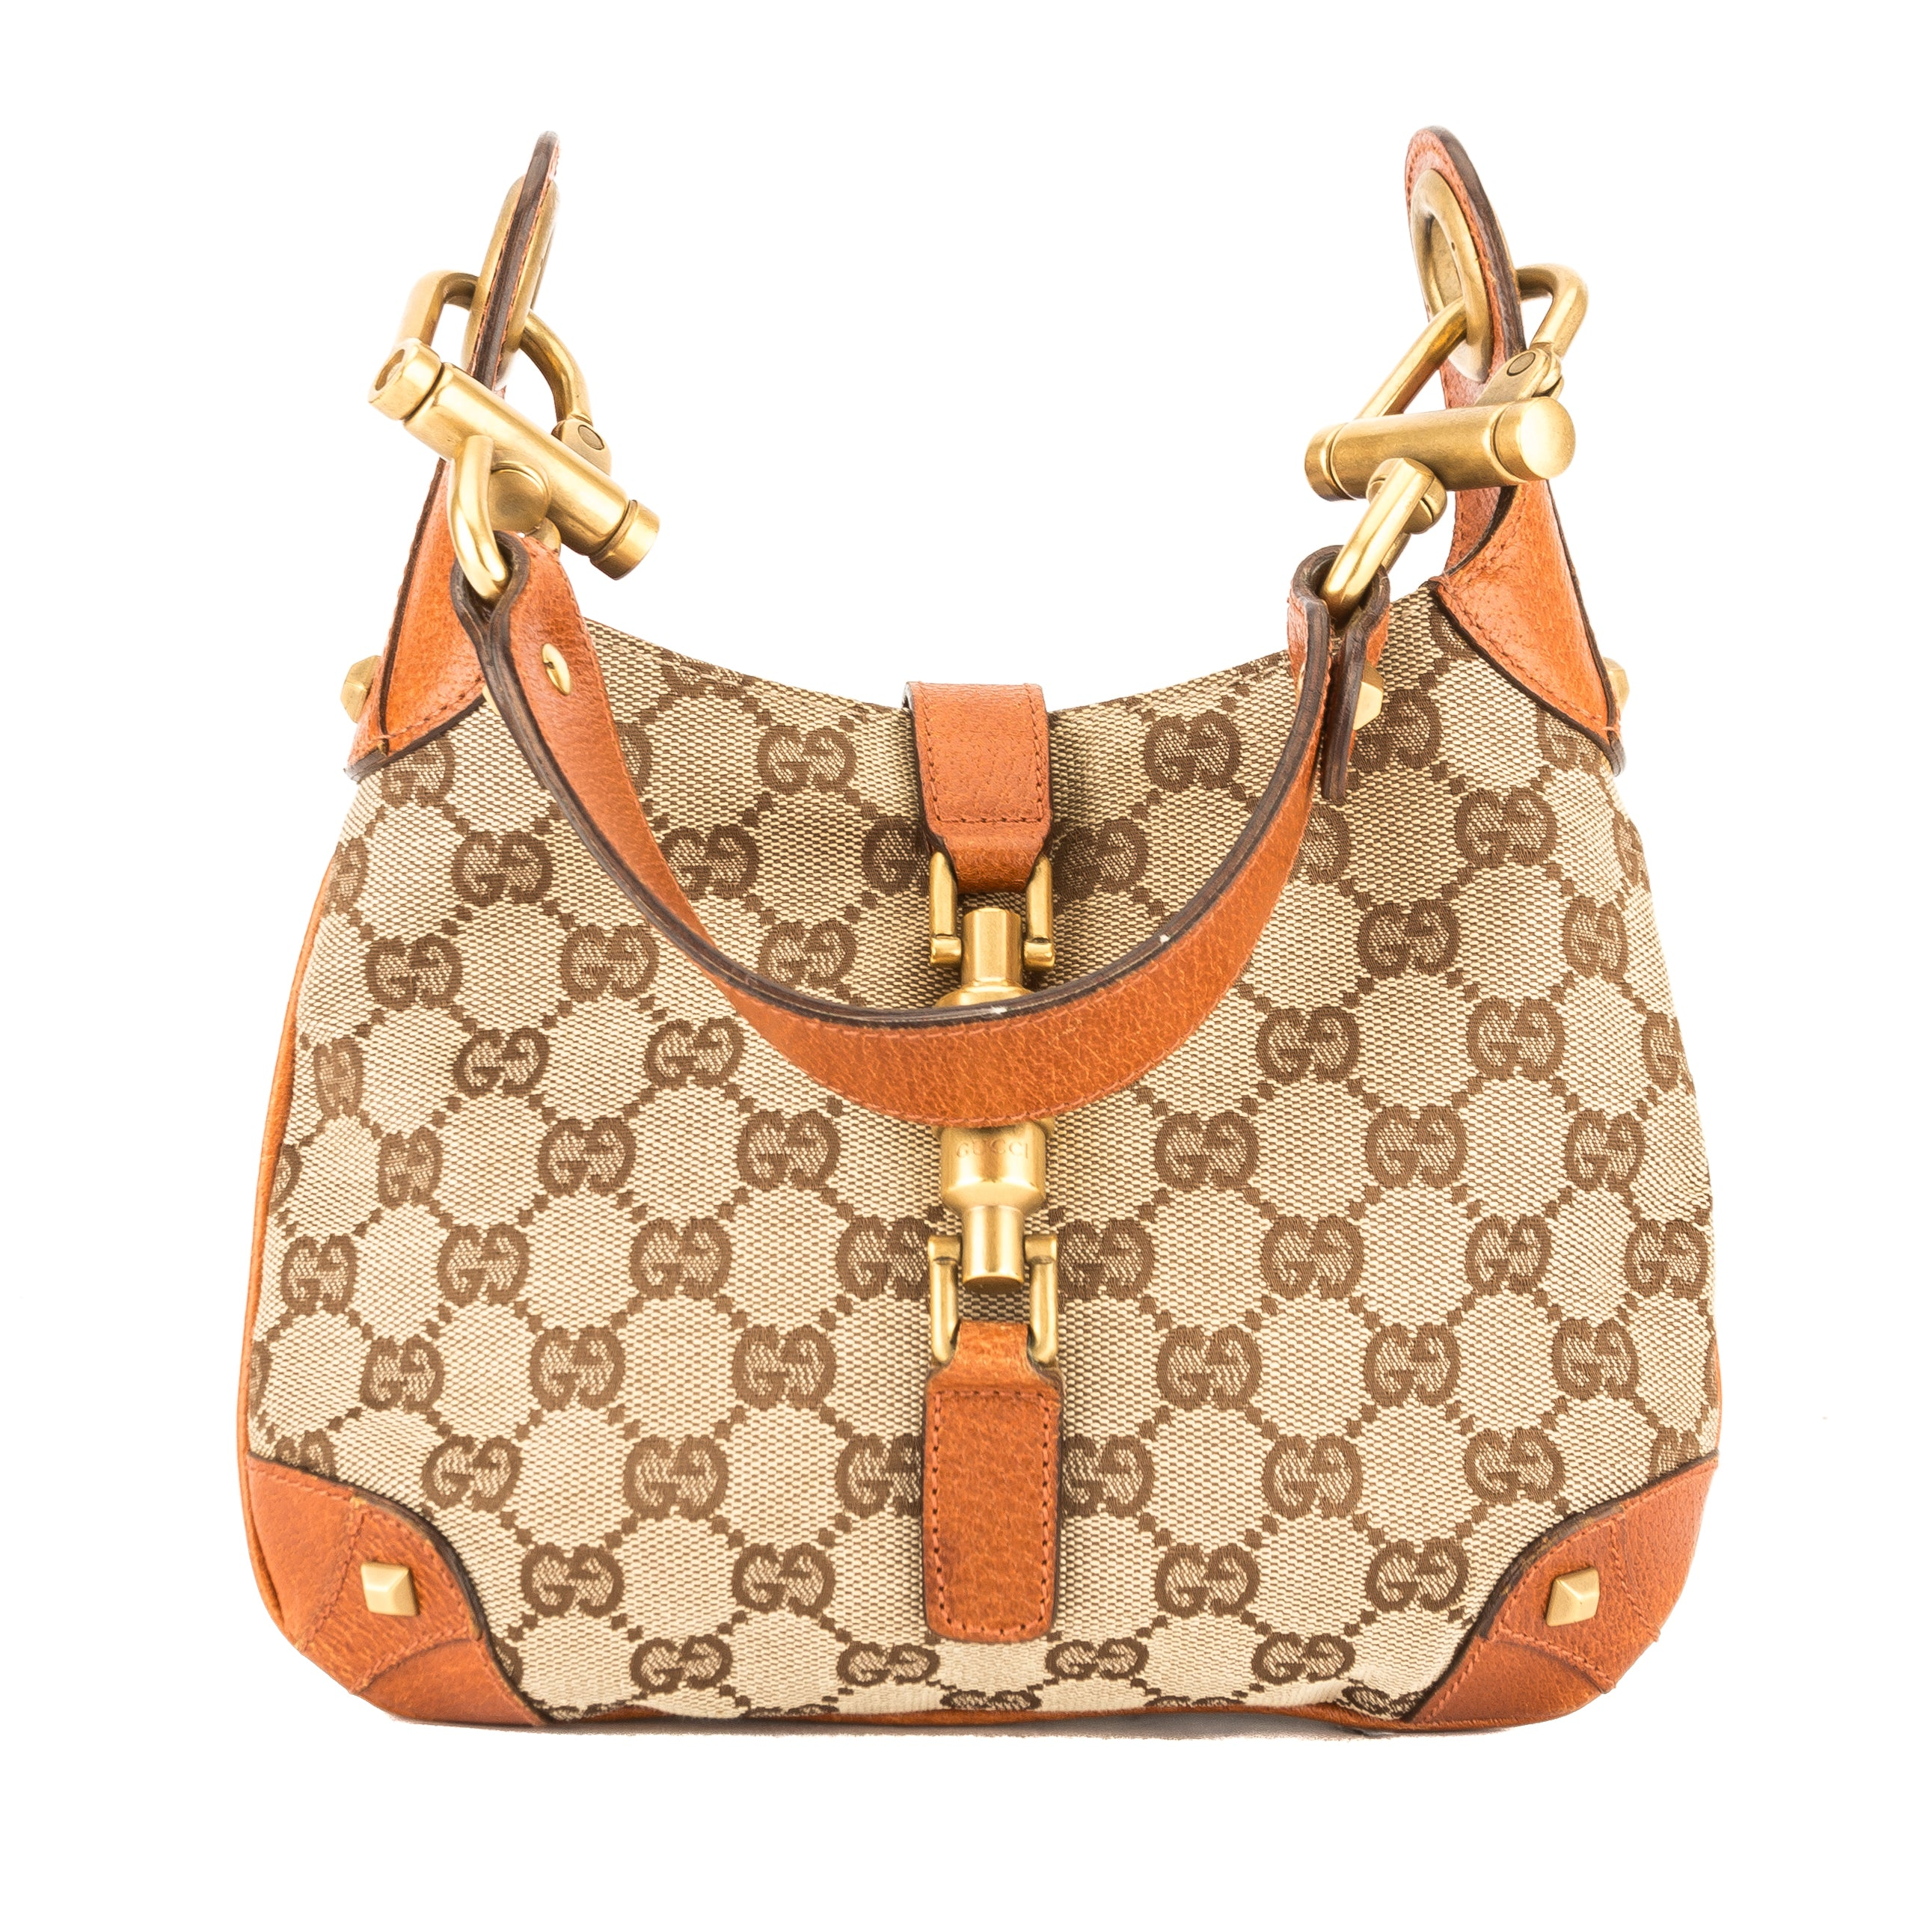 Gucci Tan Leather GG Monogram Canvas Jackie O Bag (Pre Owned ... f2273d74b2bb0